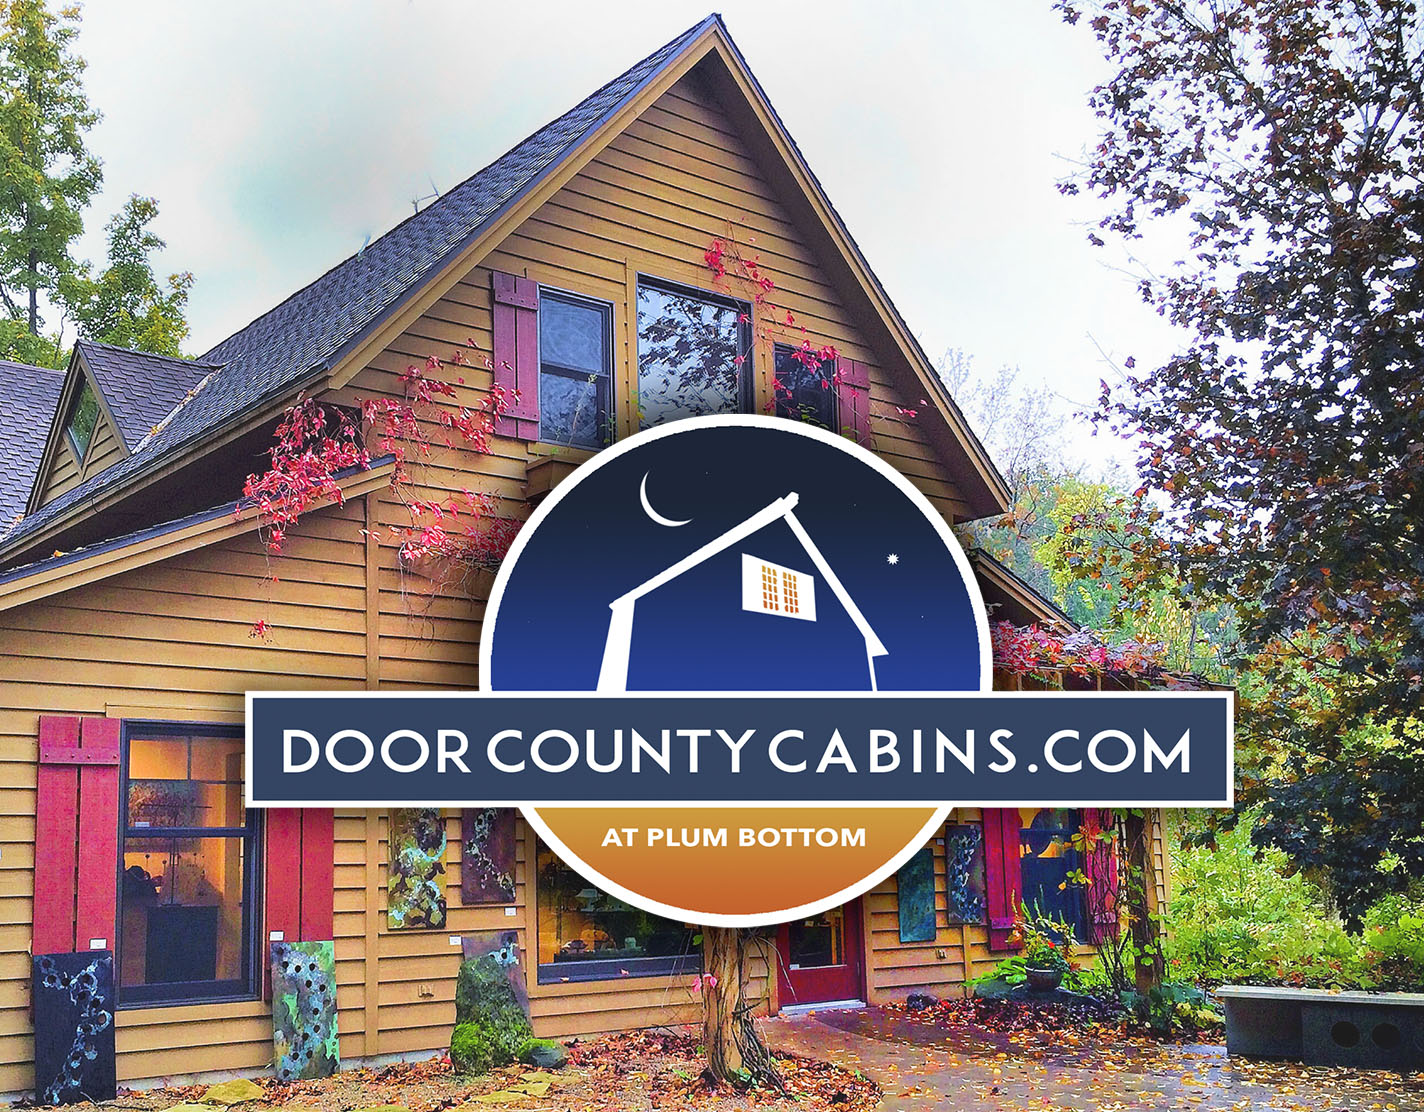 Door County Cabins